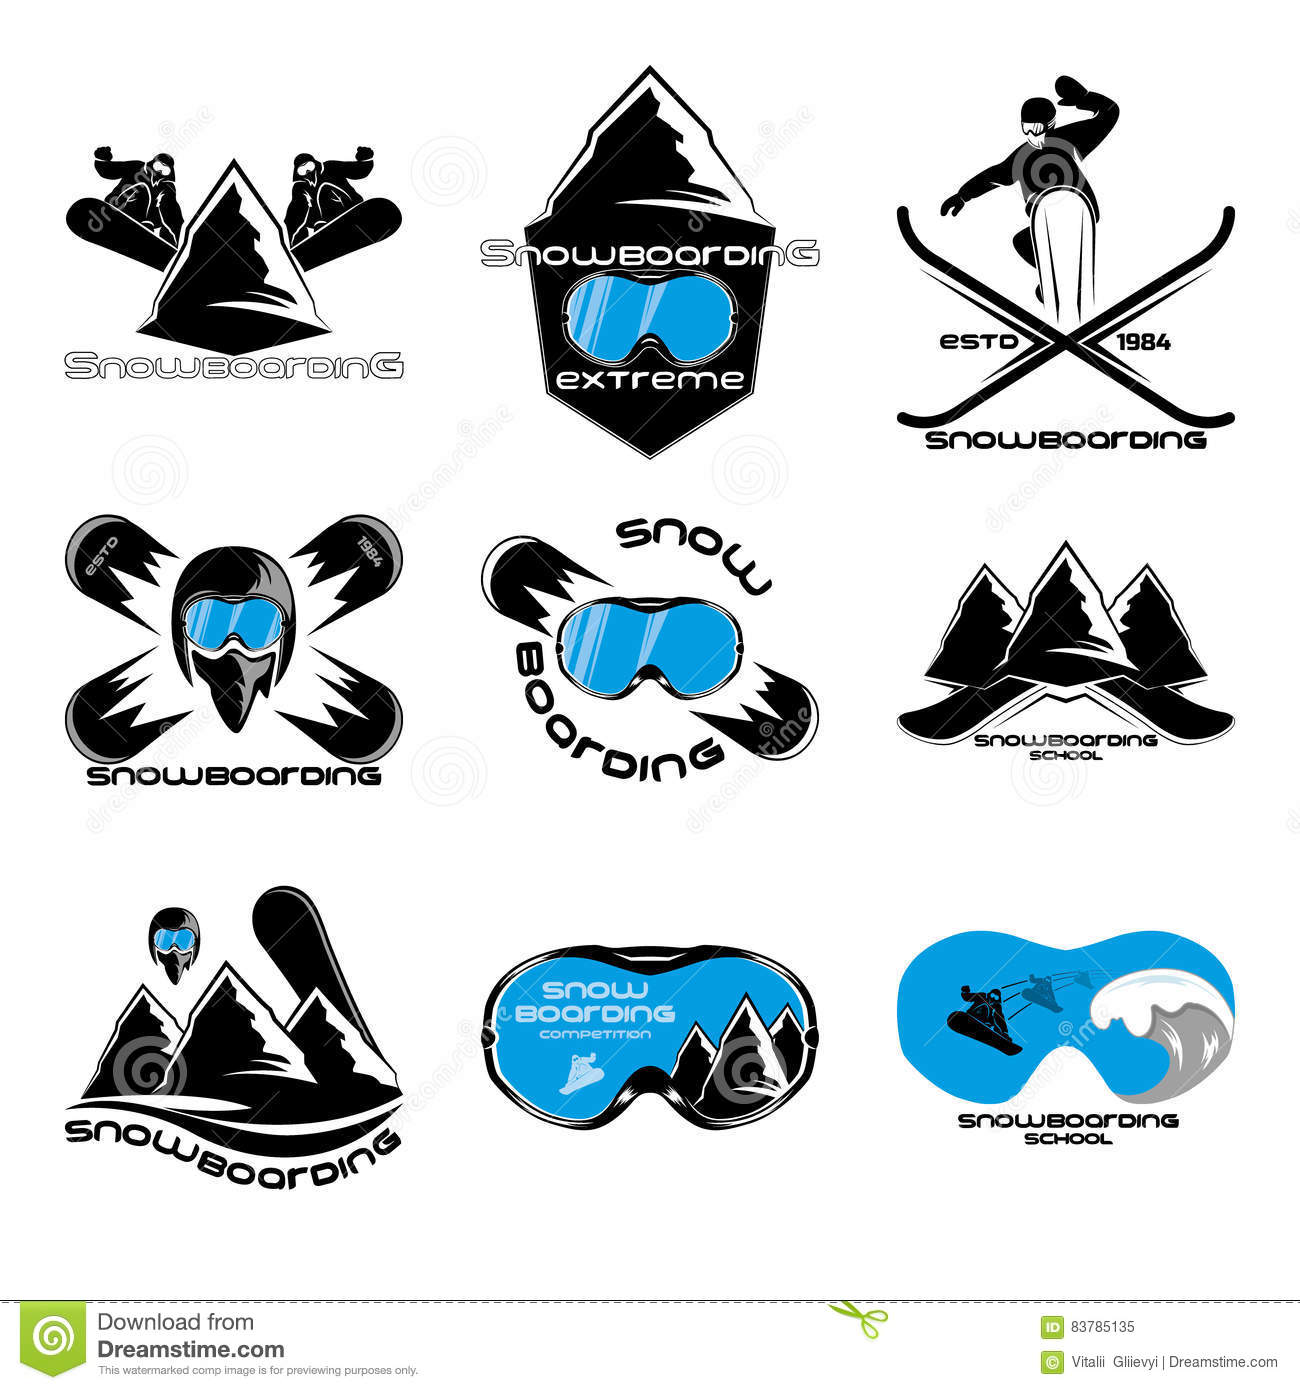 467a663f5f23 Royalty-Free Vector. Set Snowboarding logo design template elements.  Download preview